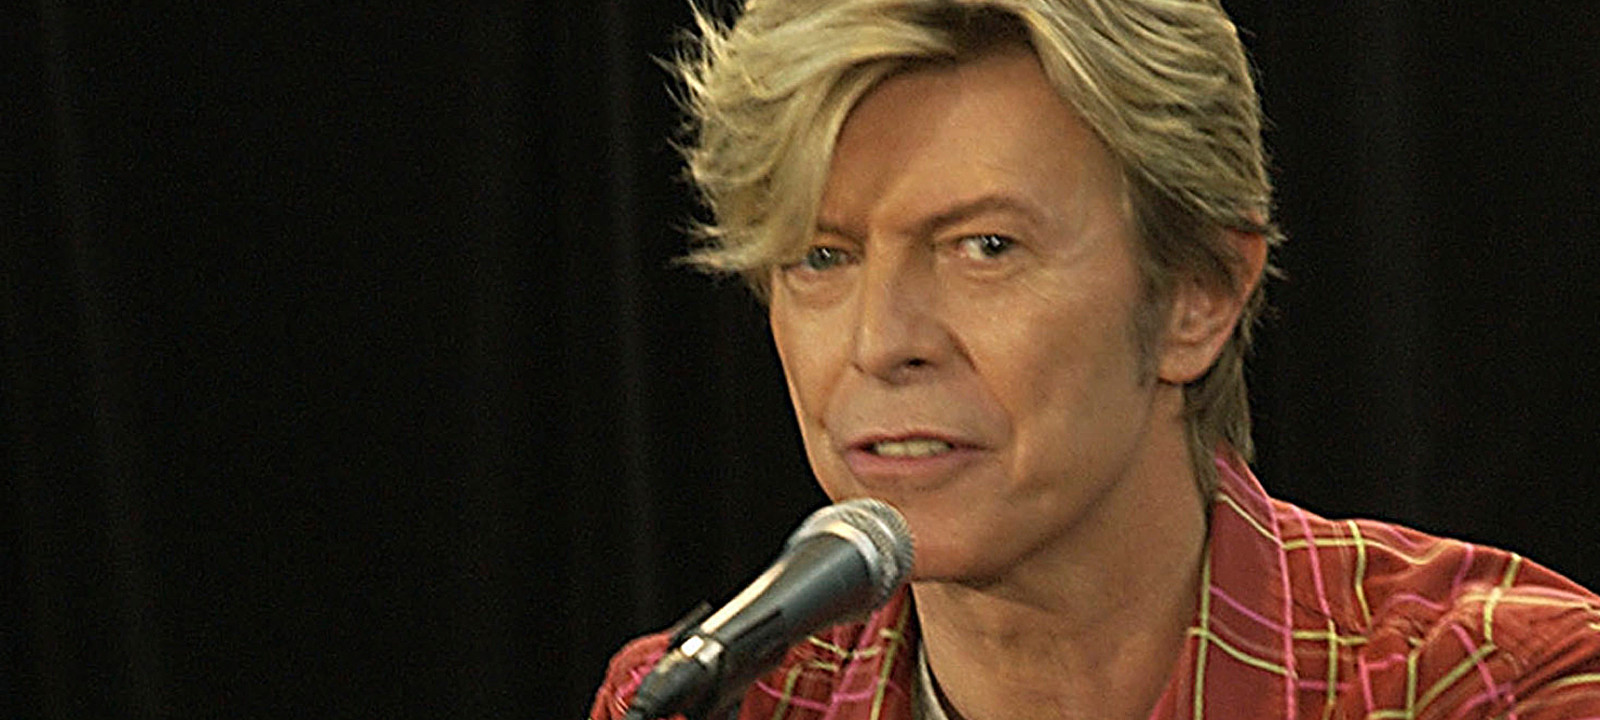 David Bowie in 2004 (Photo: Patrick Riviere/Getty Images)